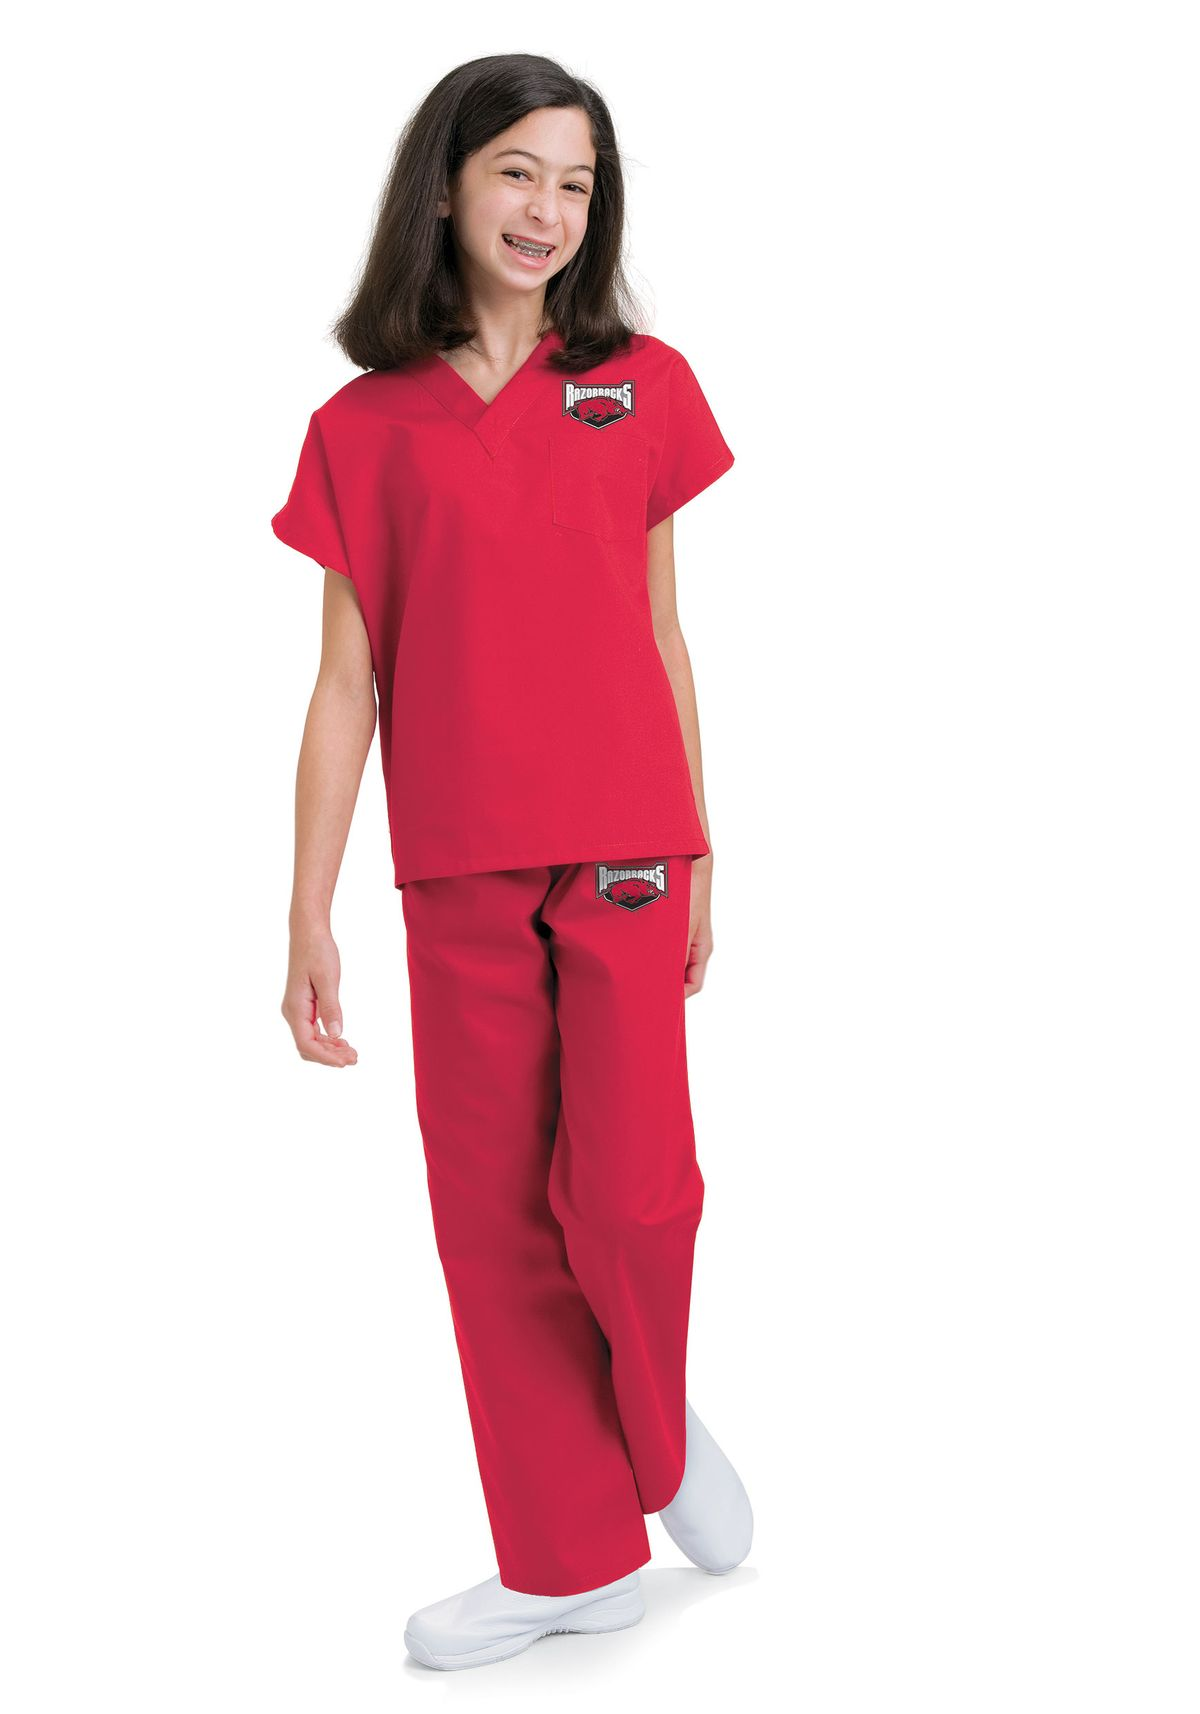 Landau 7000 Unisex S Child S Scrub Set Ebay